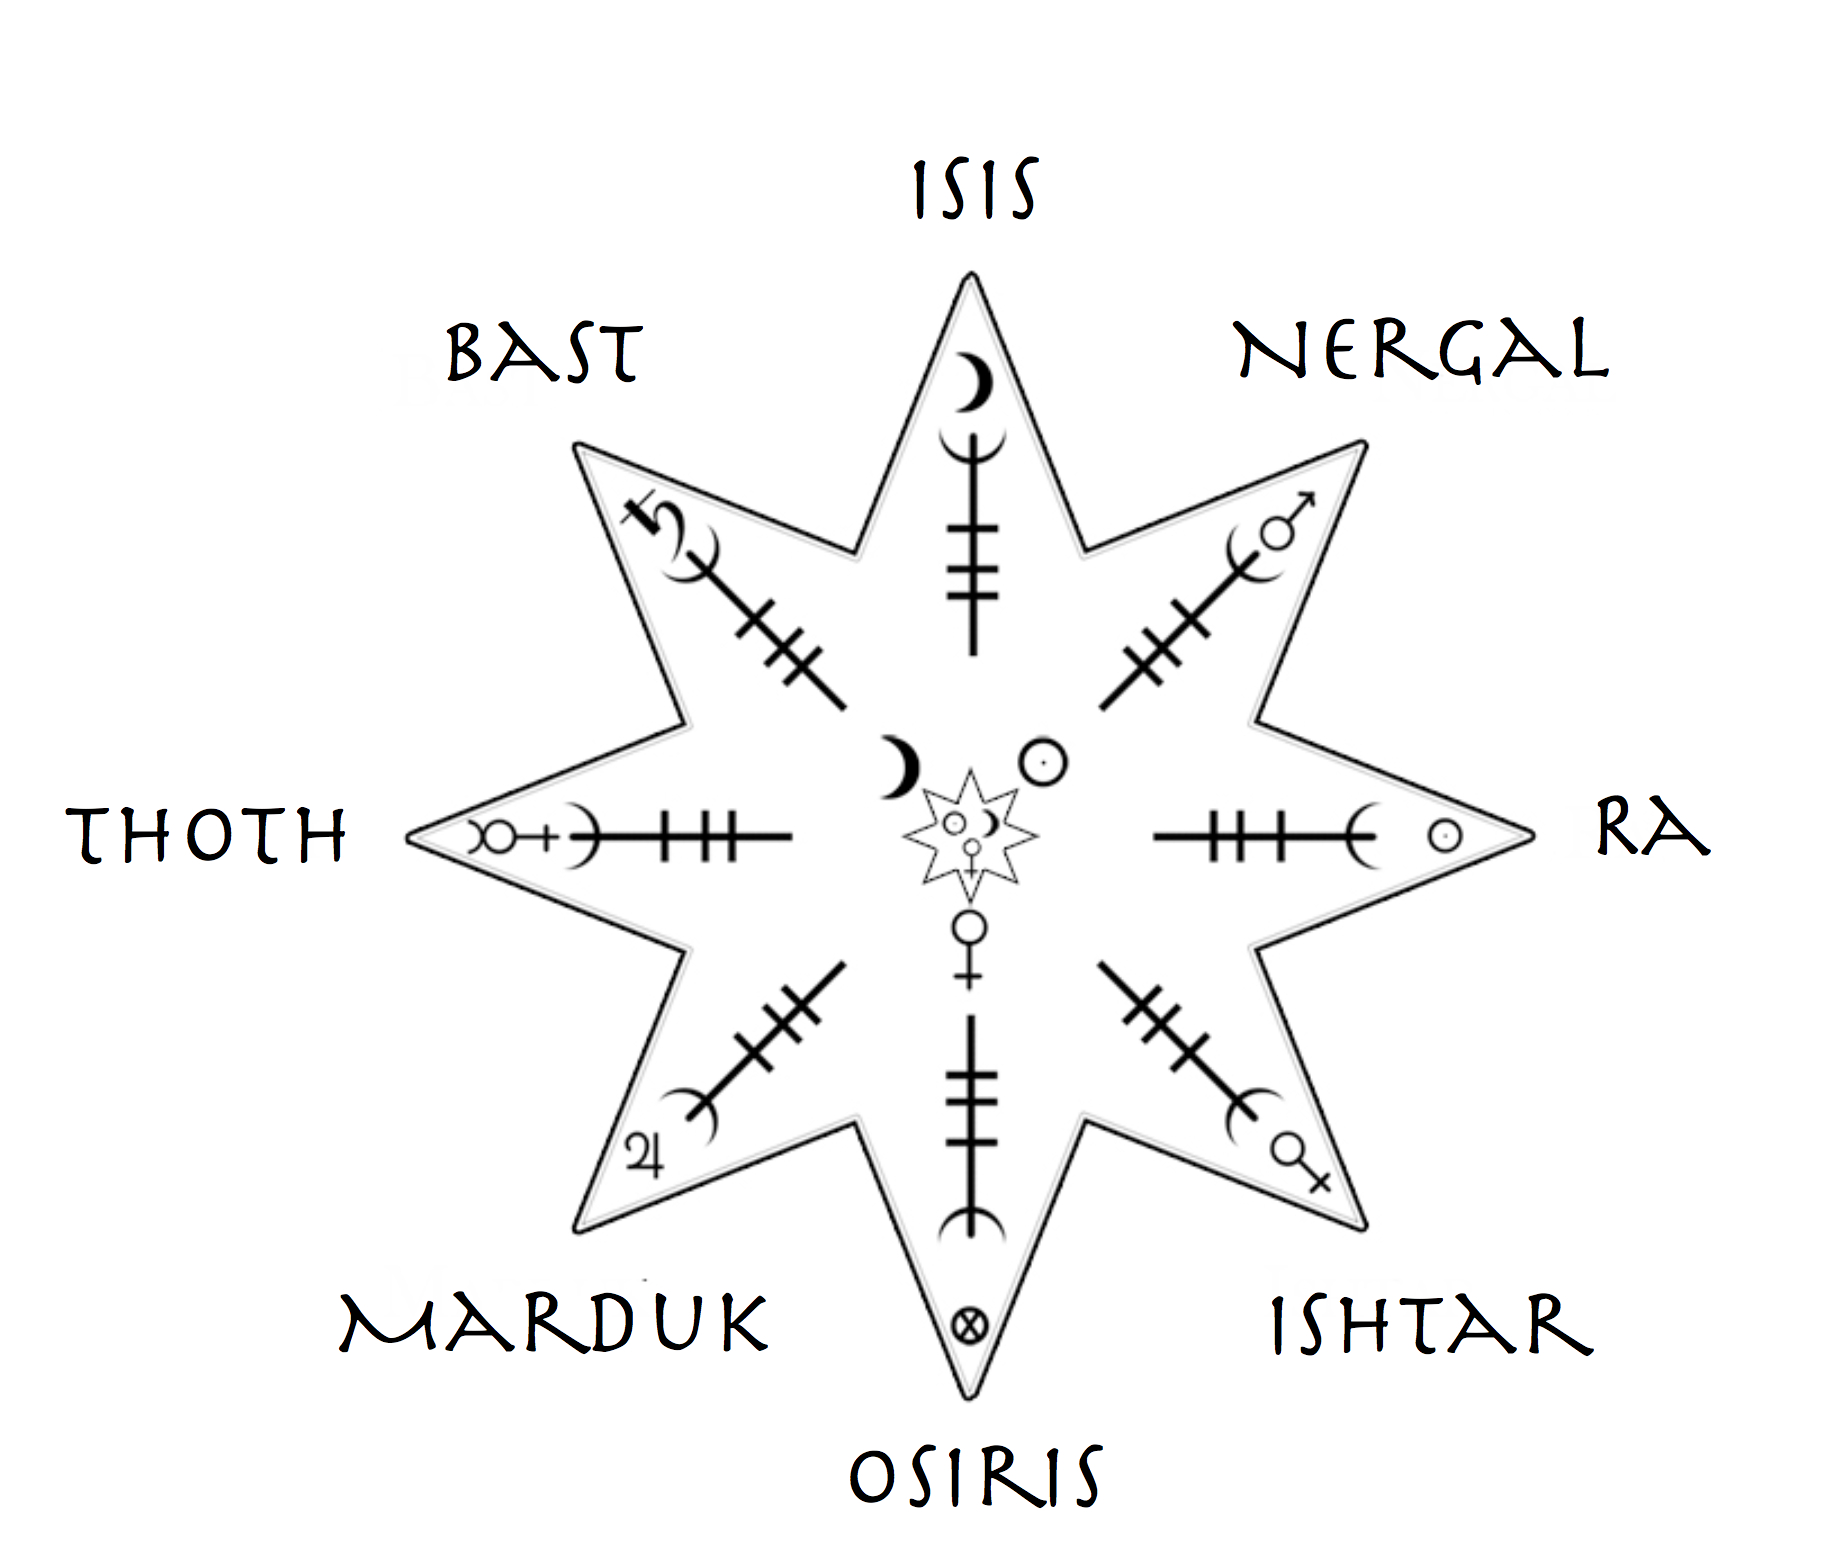 Star of ishtarg star of ishtar biocorpaavc Image collections